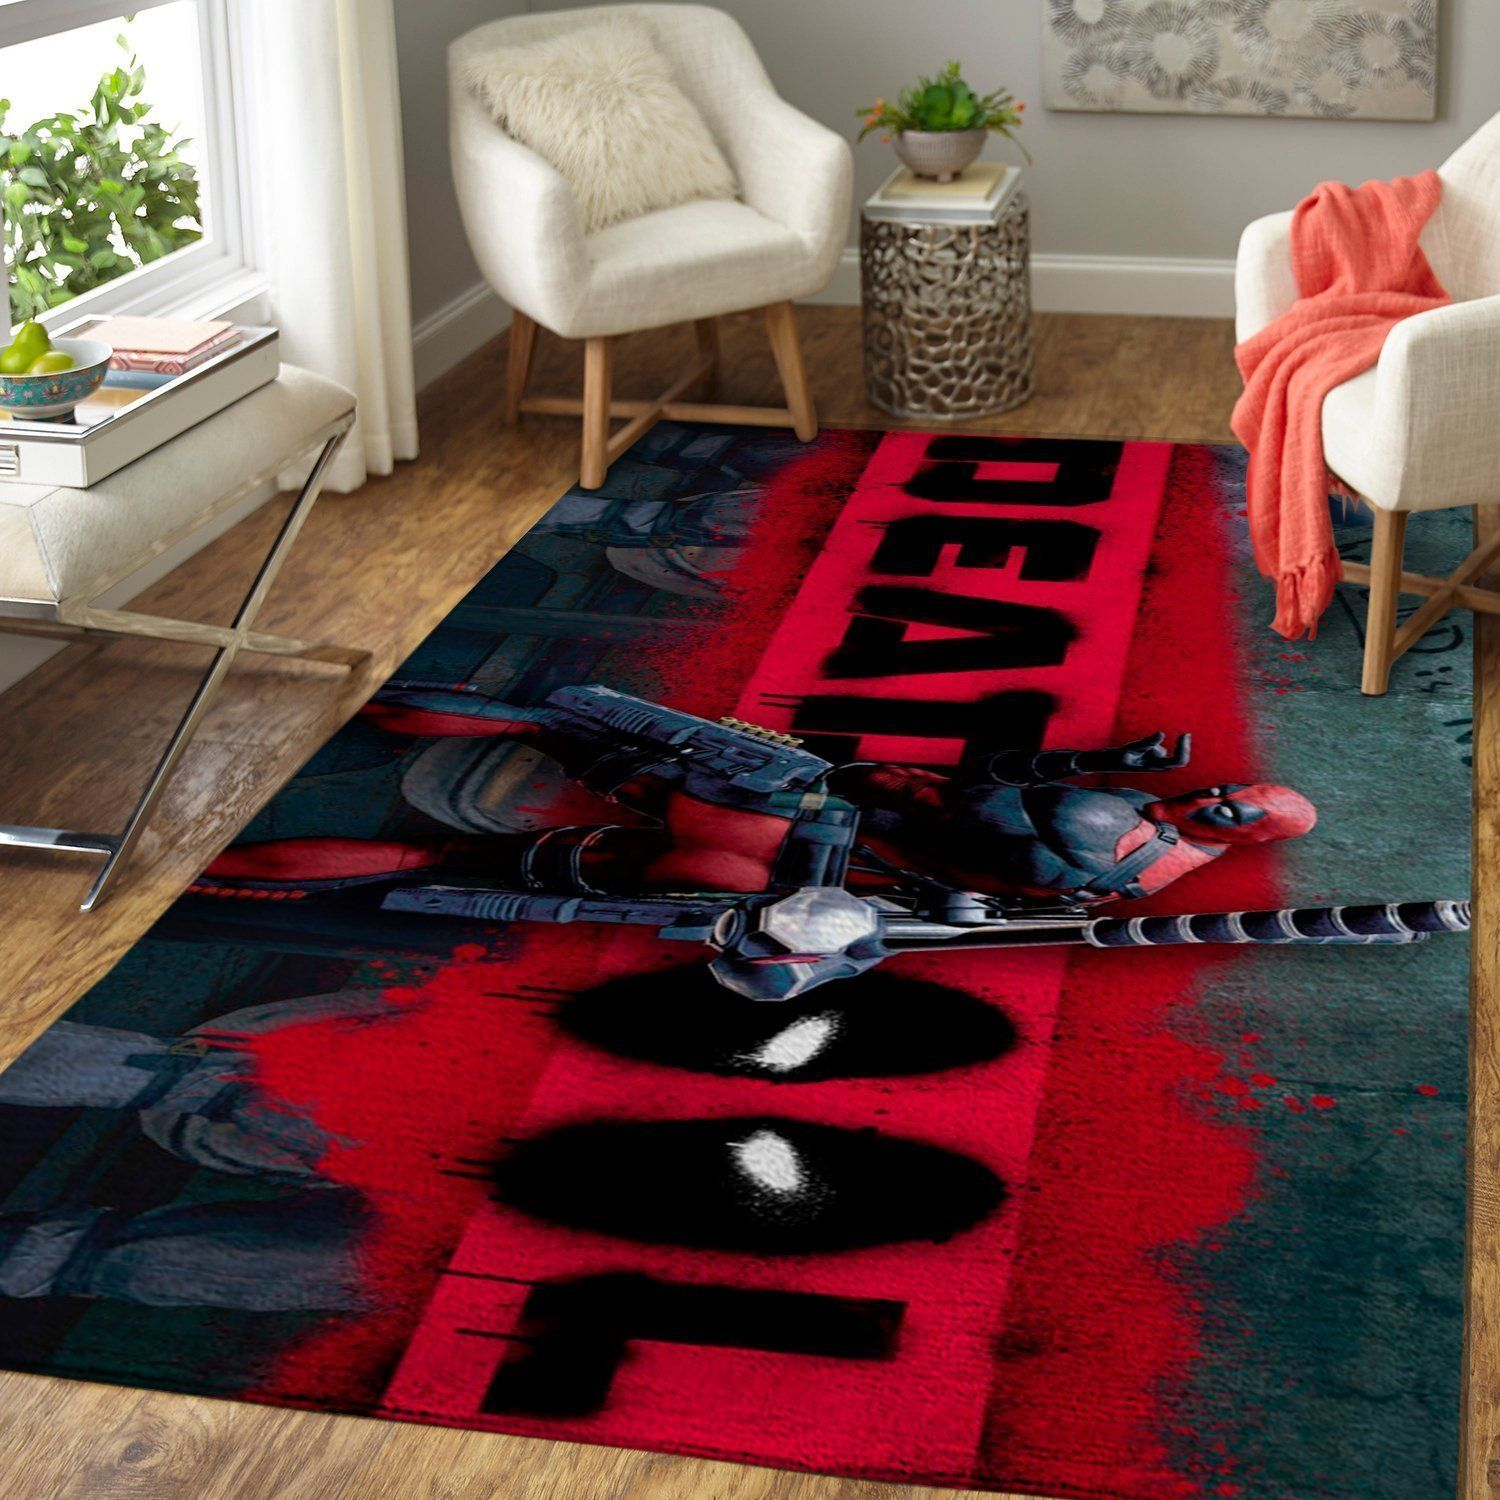 Deadpool Area Rugs / Marvel Superhero Movie Living Room Carpet Custom Floor Home Decor RB7A8E7E8506